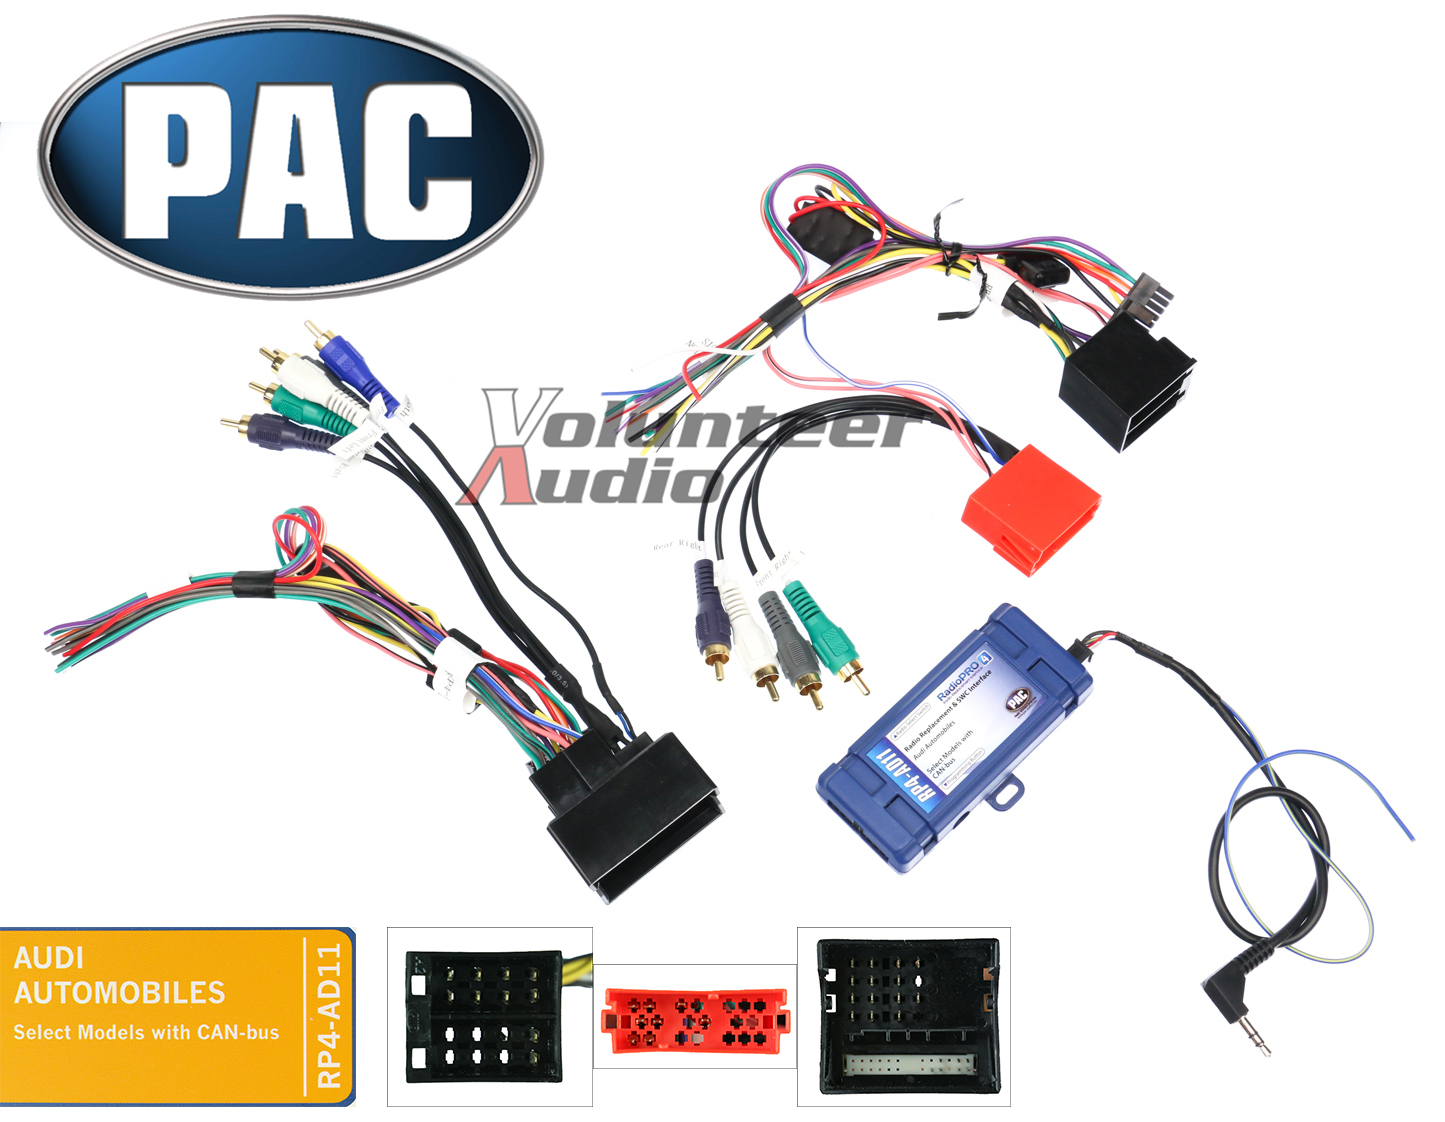 hight resolution of pac rp4 ad11 select audi radio install wiring harness interfacedetails about pac rp4 ad11 select audi